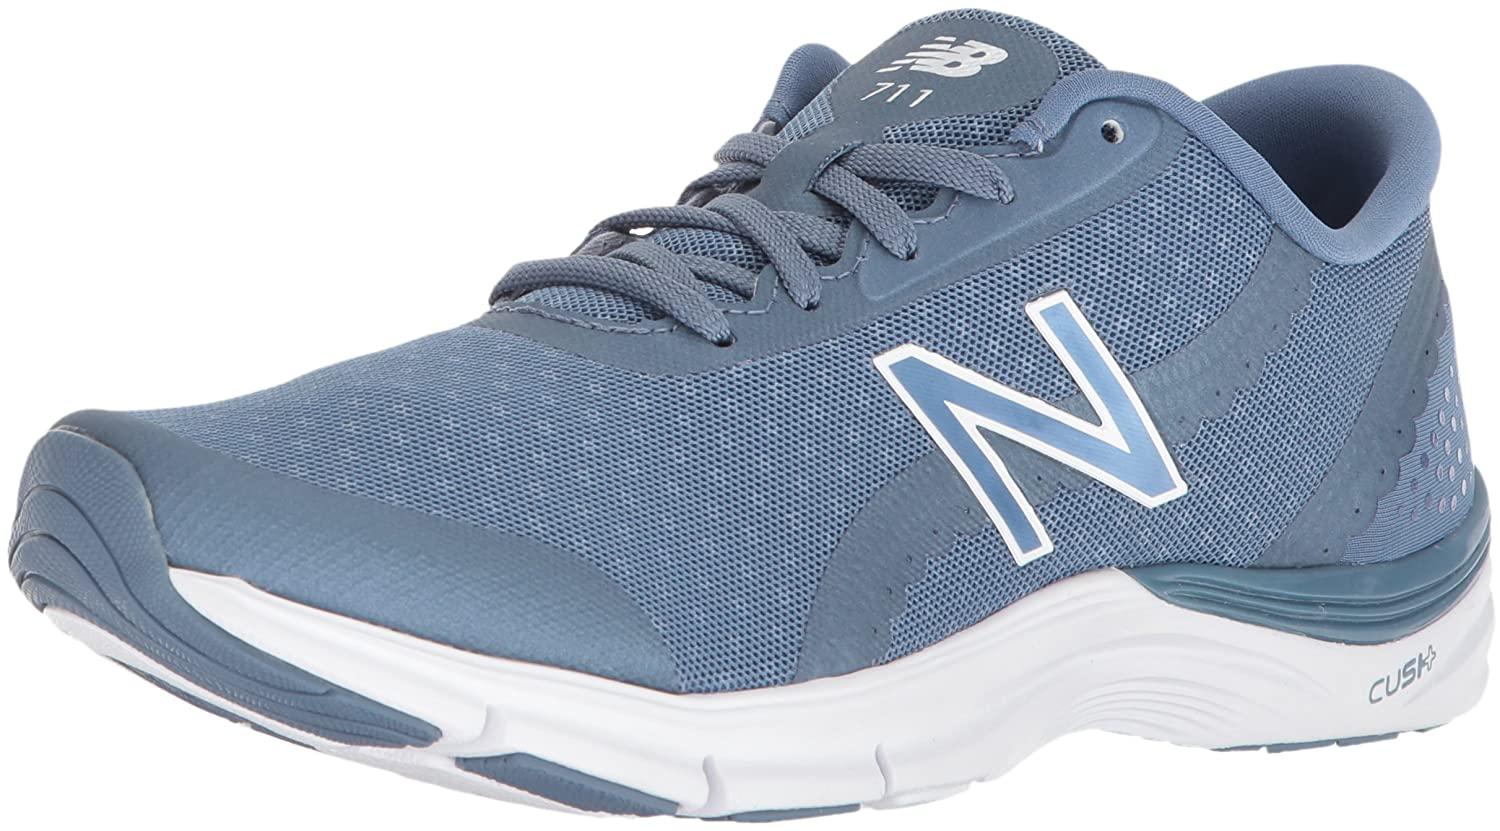 New Balance Women's 711v3 Cross Trainer B074VK6J7K 10.5 B(M) US|Vintage Indigo/White